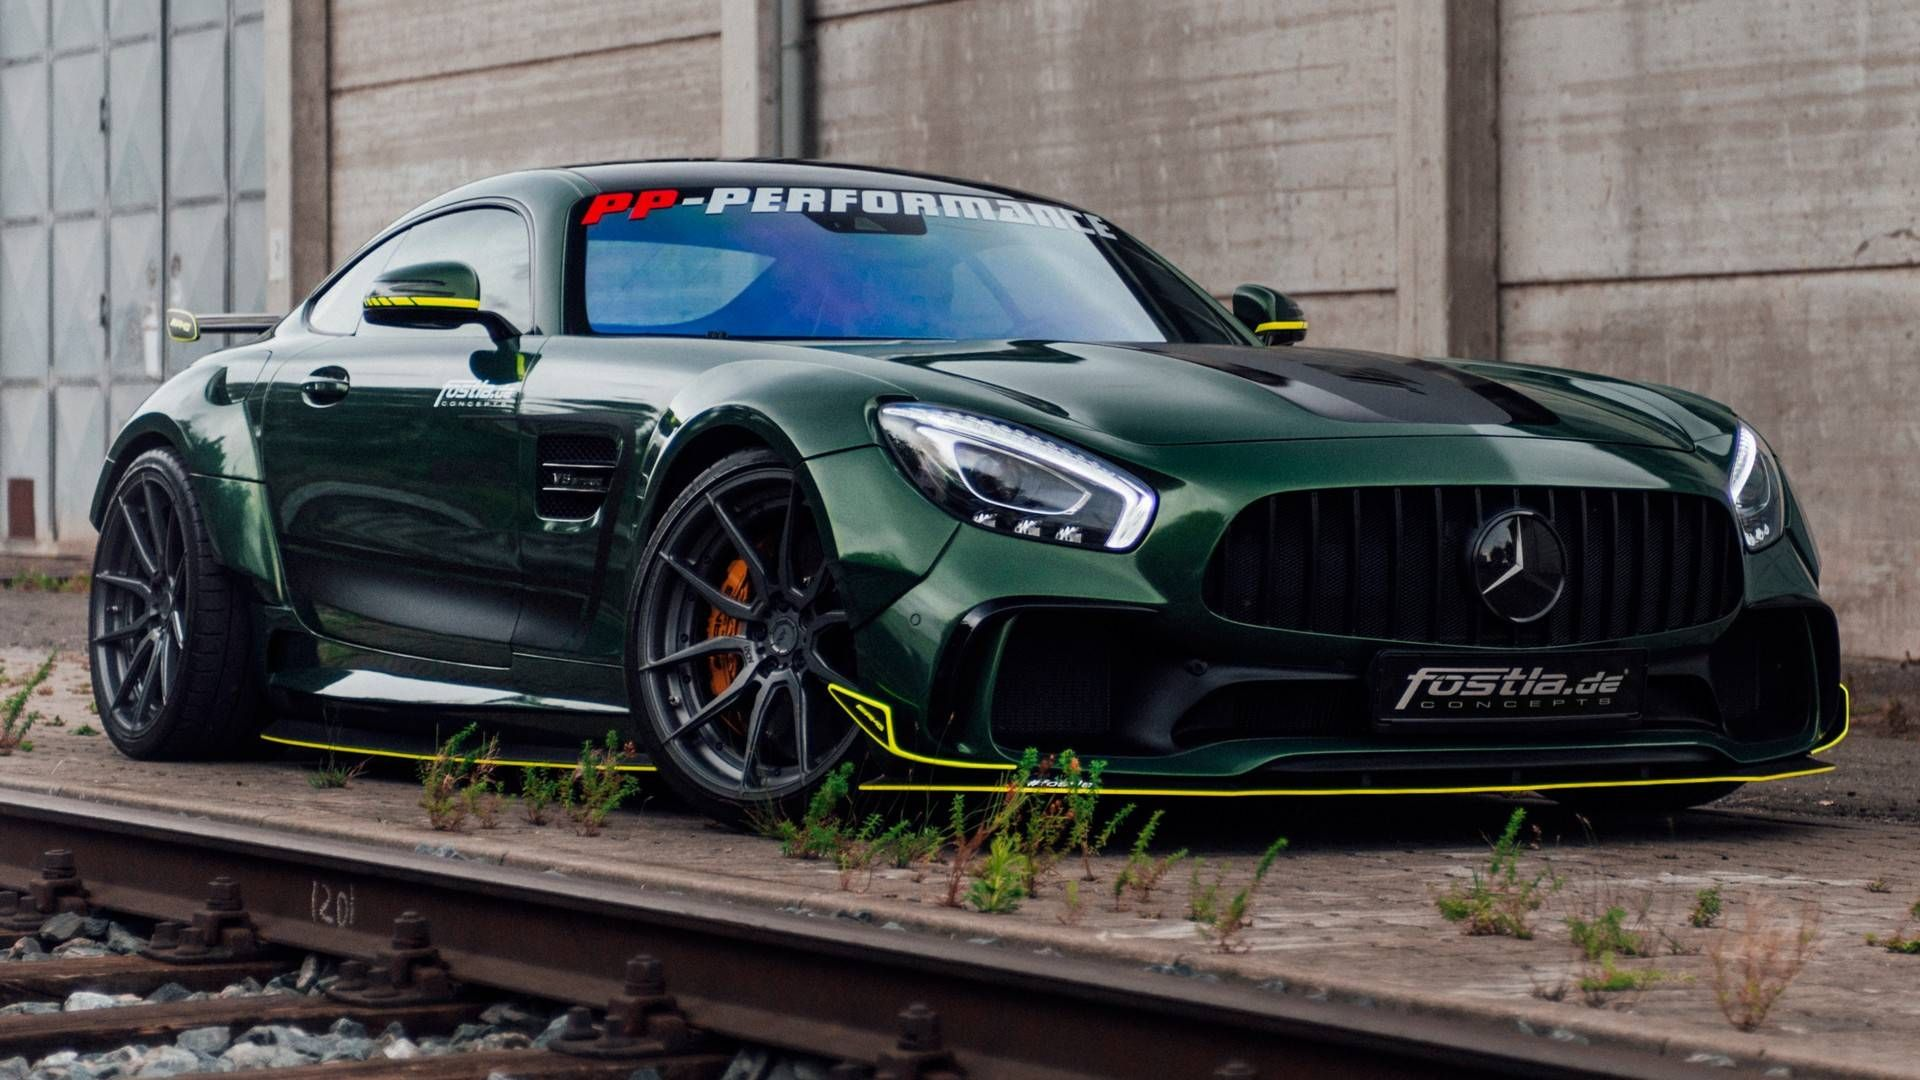 Mercedes Amg Gt Looks Mean And Green With 650 Horsepower Upgrade